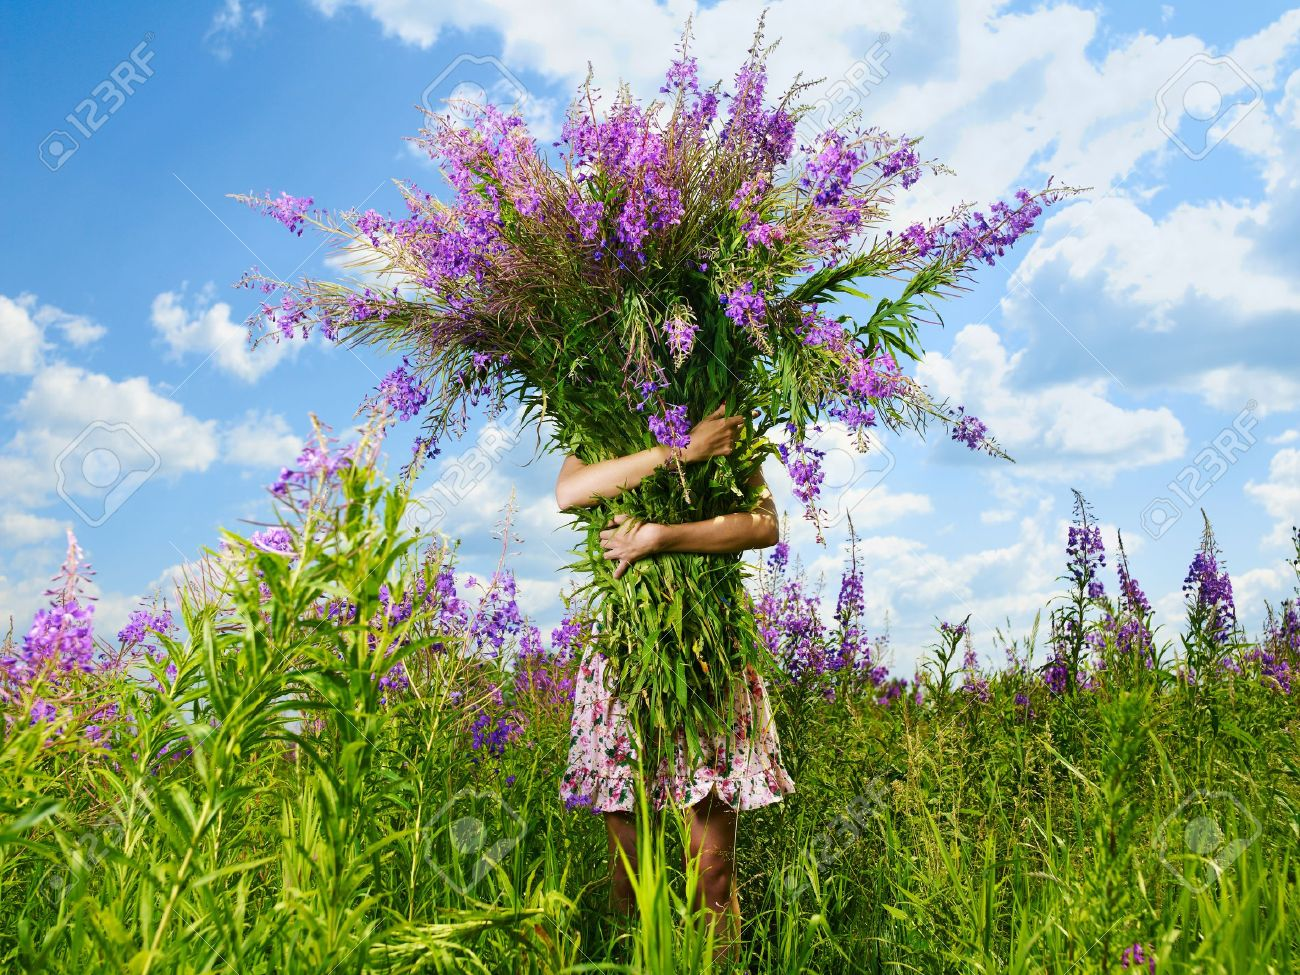 A Girl With A Giant Bouquet Of Flowers Stock Photo, Picture And ...